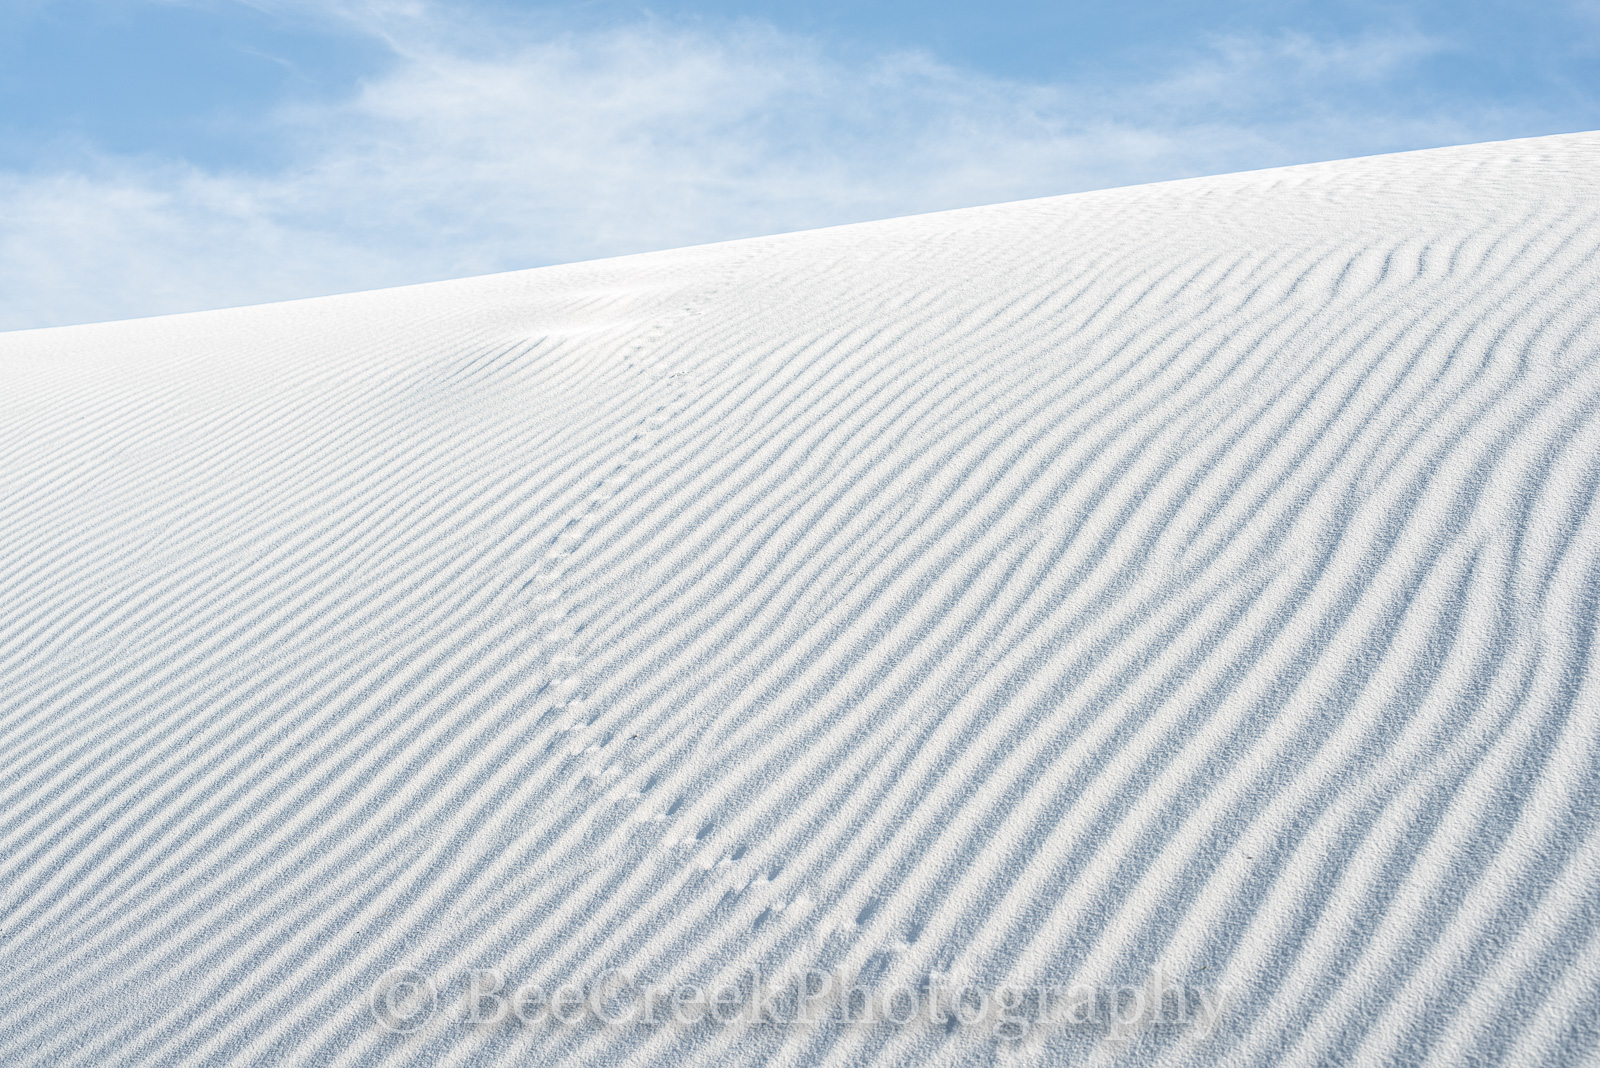 White Sands, landscapes, Alamagorda nm, Animal tracks in the sand dune, New Mexico, New Mexico Parks, White Sand National Monument, beautiful photos of white sands, dunes, flow of sand, gypsum, images, photo